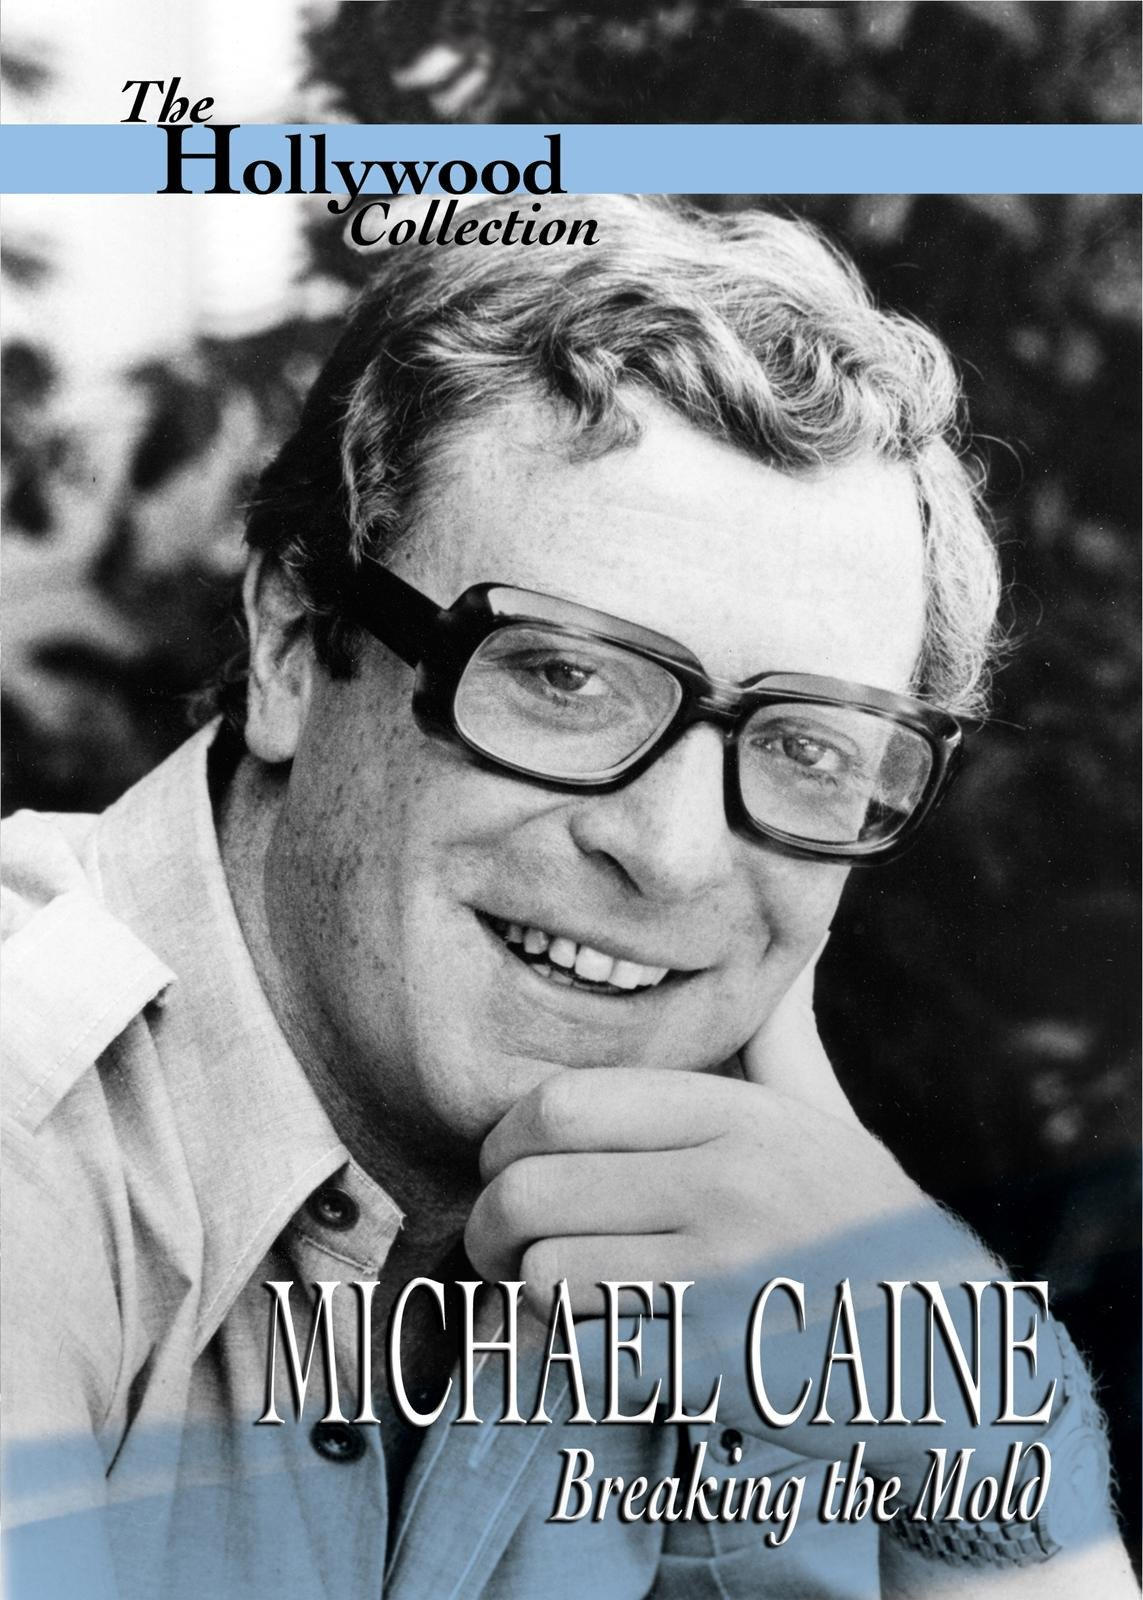 Hollywood Collection: Michael Caine Breaking the Mold on Amazon Prime Instant Video UK